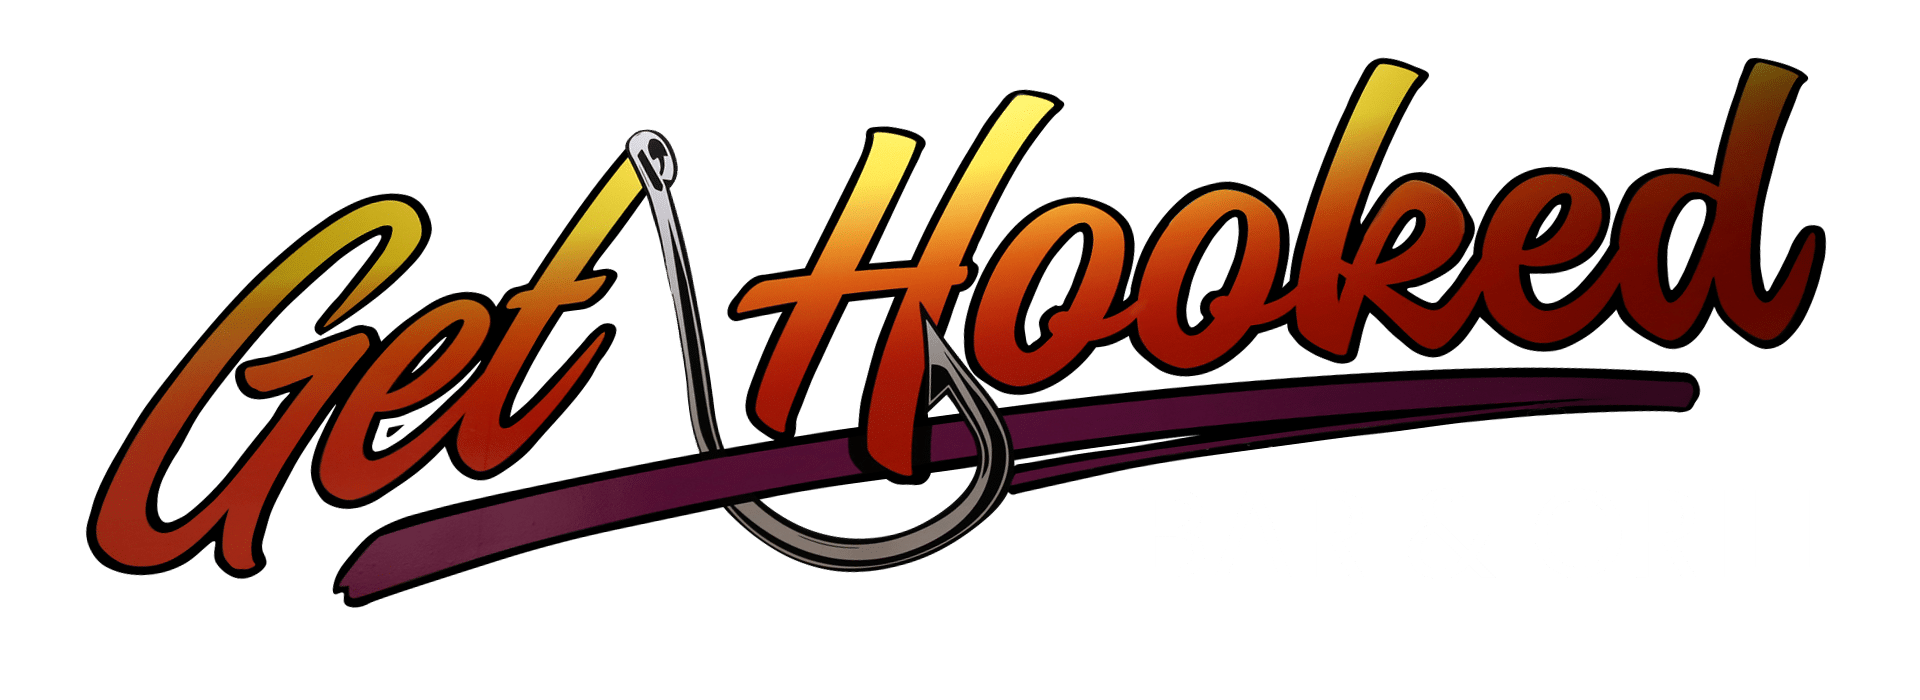 Get Hooked Bar & Grill